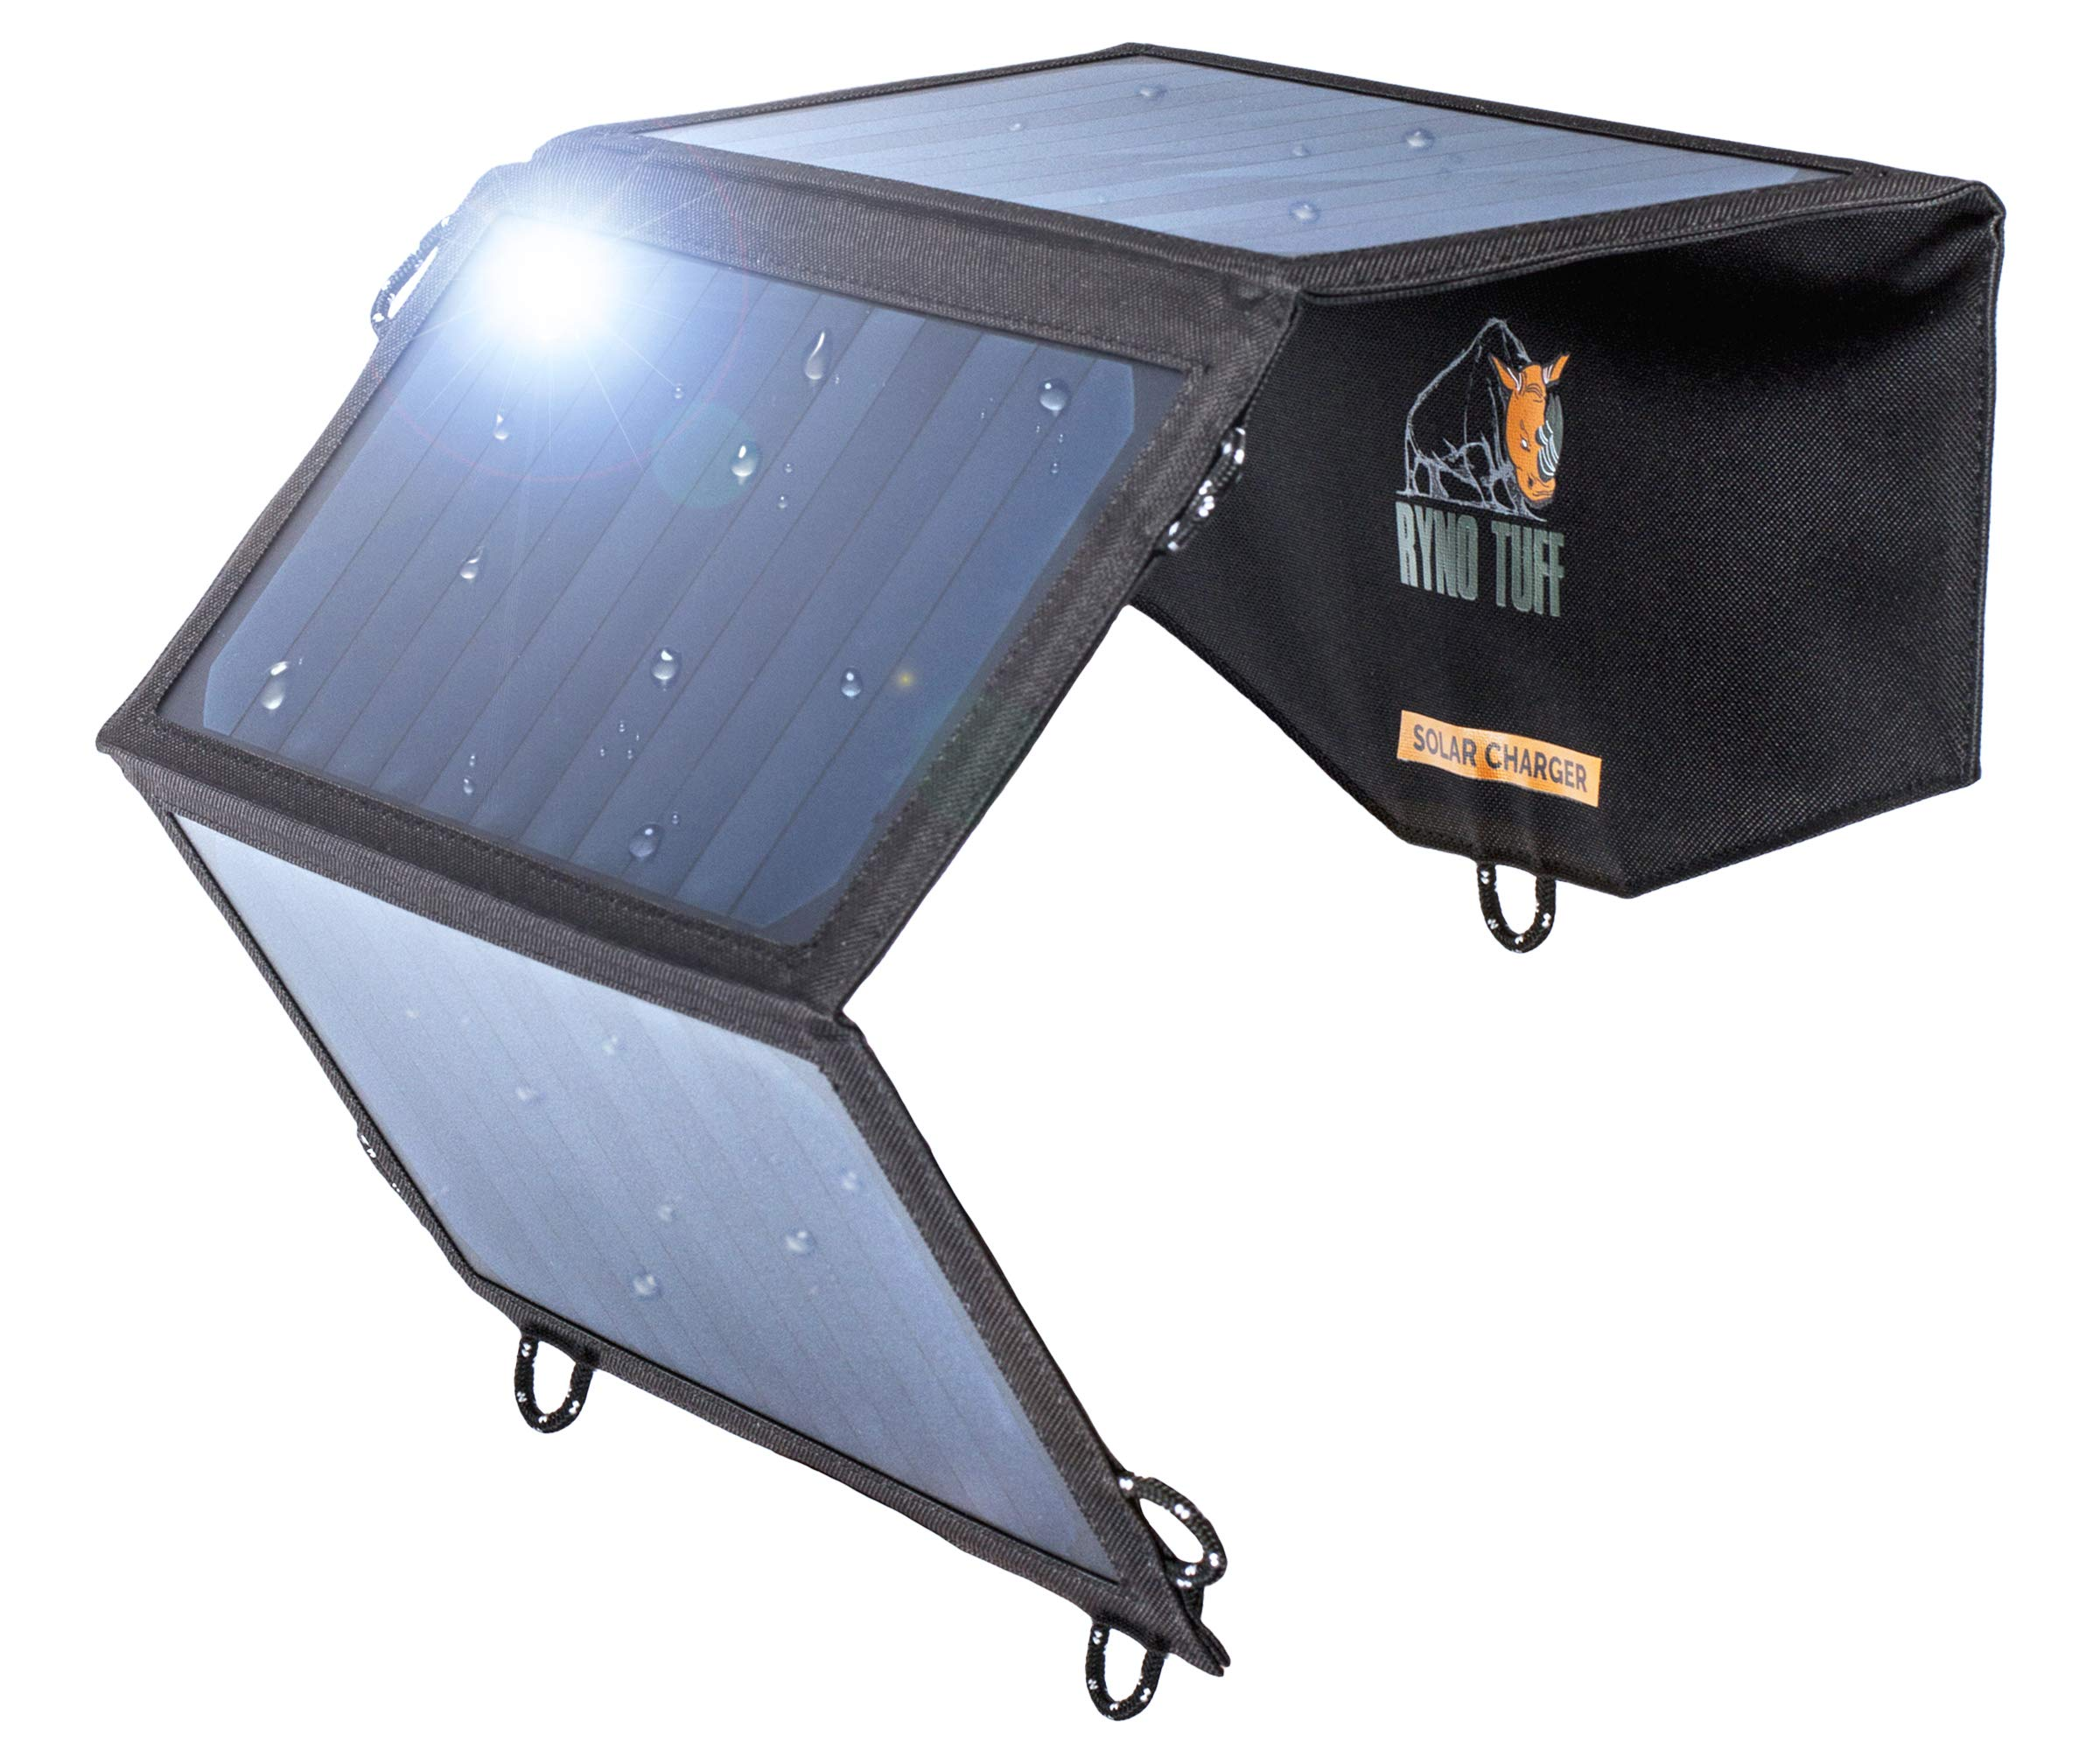 Ryno-Tuff Portable Solar Charger for Camping - 21W Foldable Solar Panel Charger 2 USB Ports - Waterproof & Durable, Compatible with iPhone, iPad, Galaxy, LG, Nexus, Battery Packs, All USB Devices by Ryno Tuff